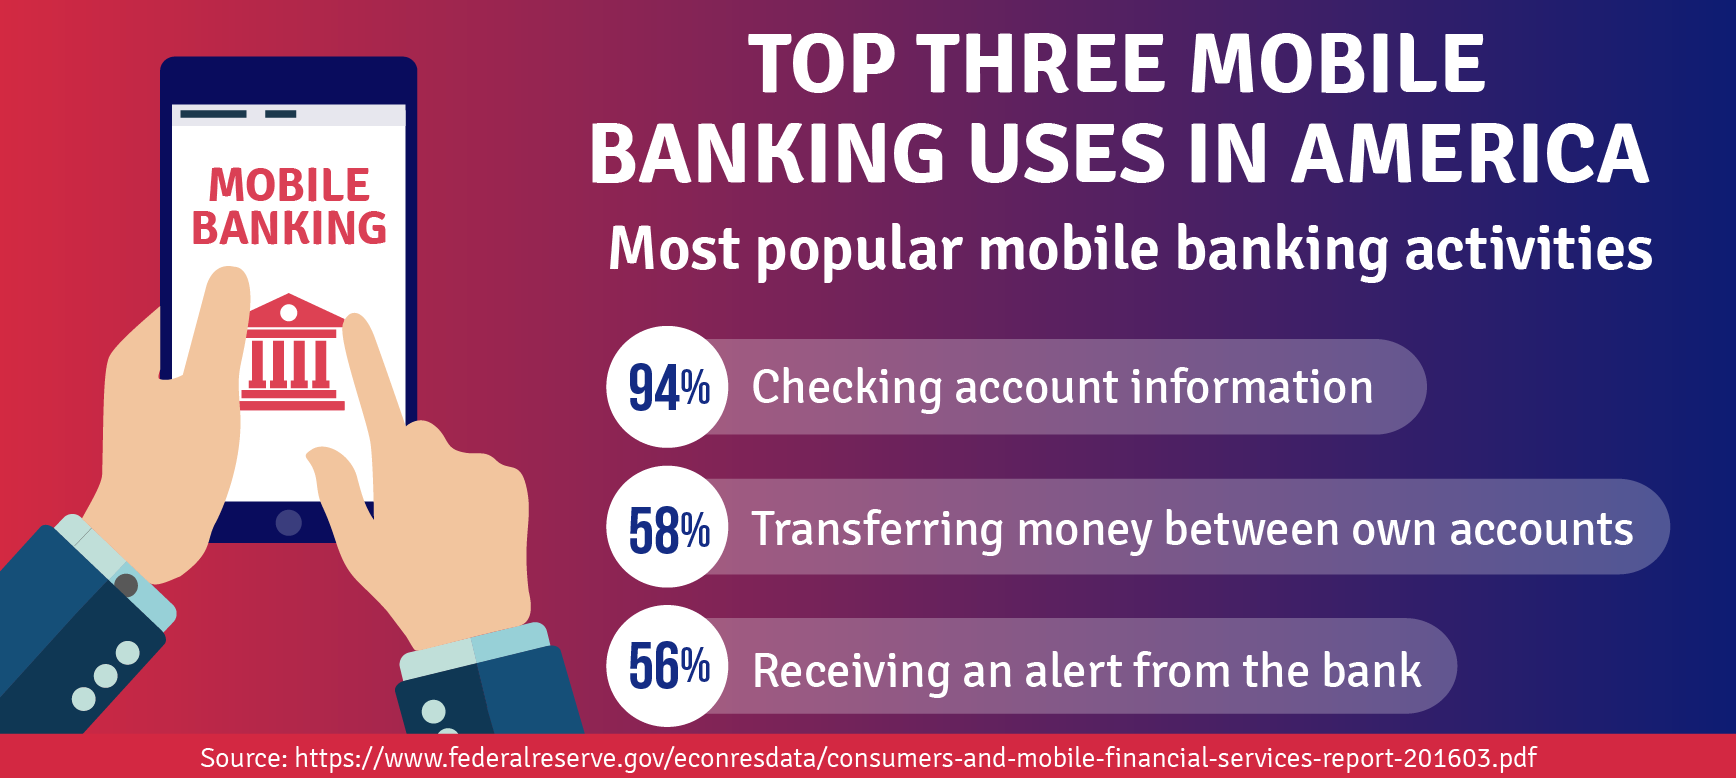 Top three mobile banking uses in america